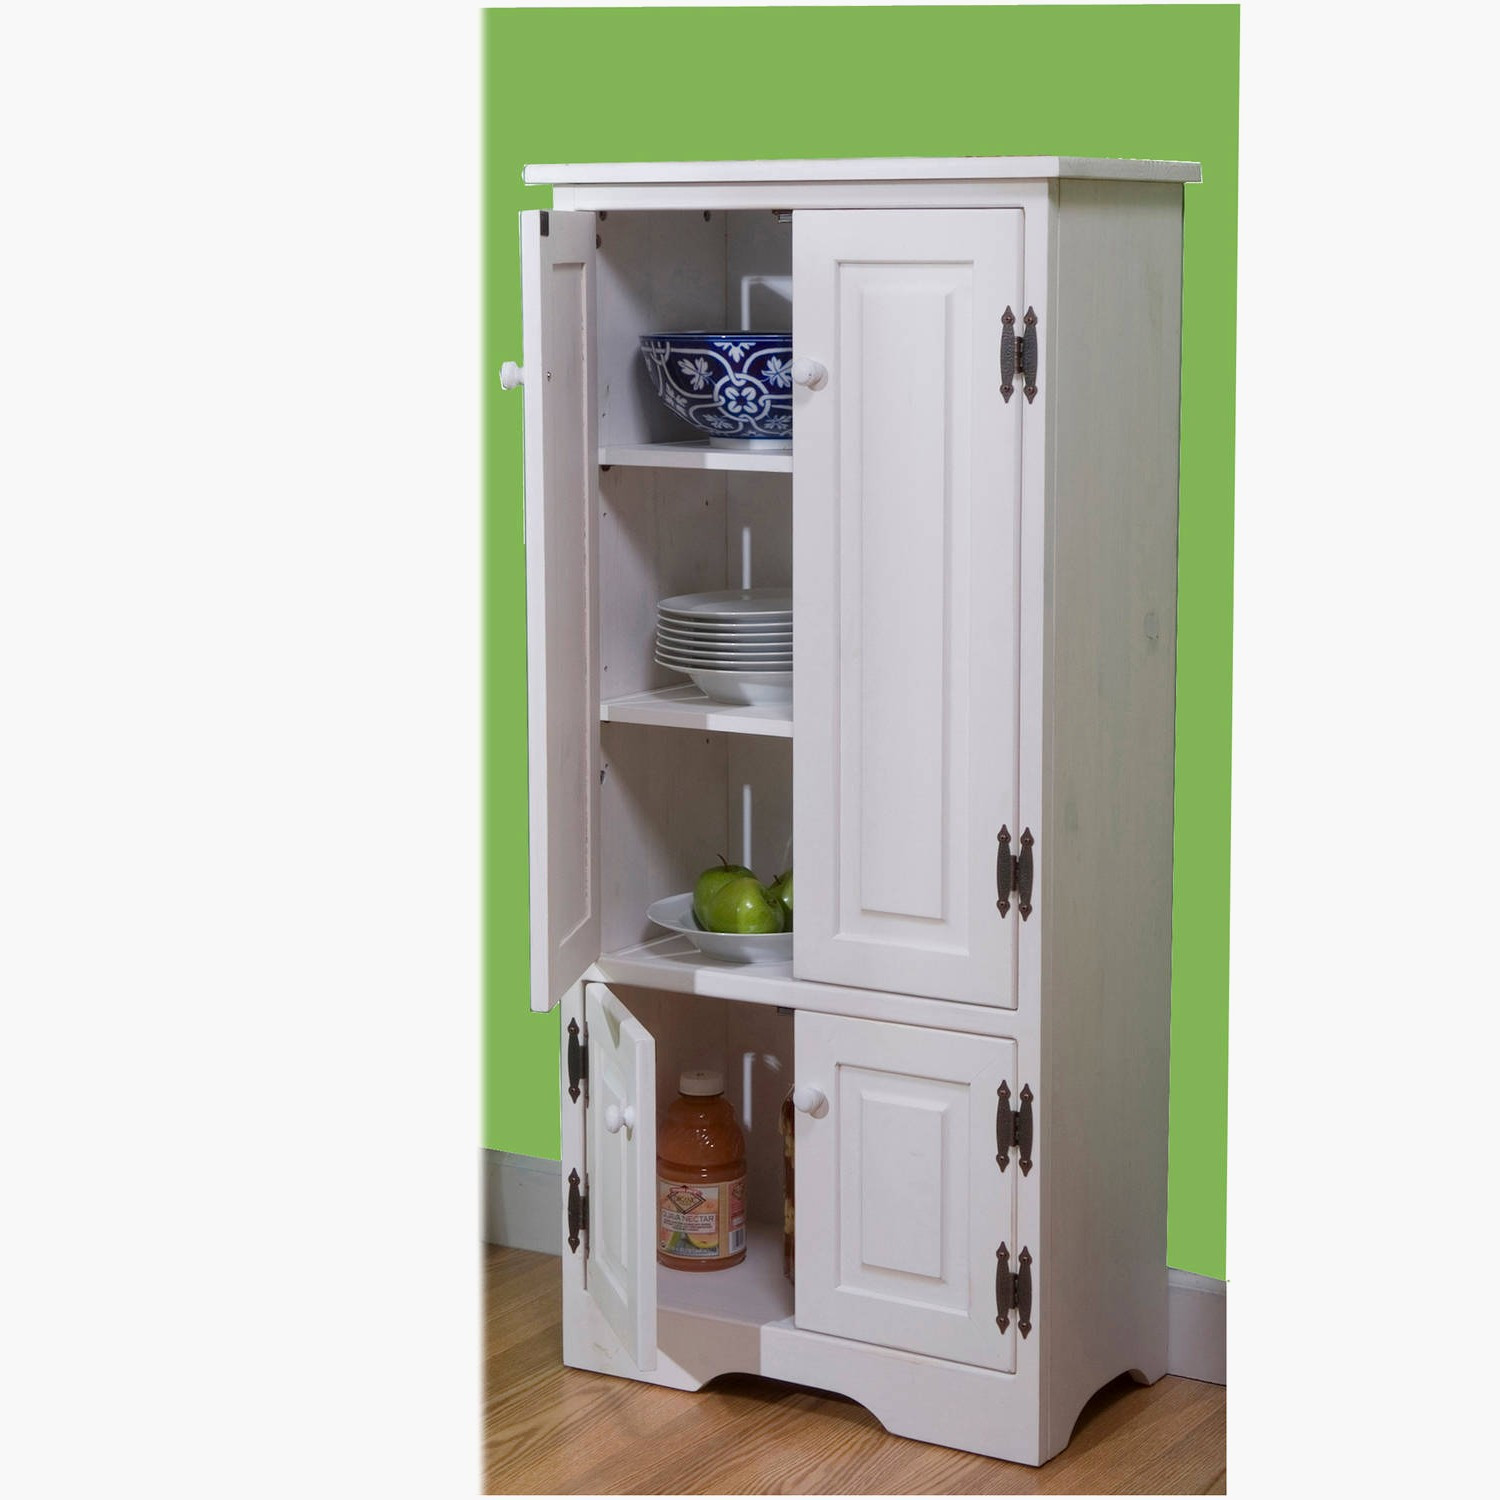 Best ideas about 12 Inch Wide Pantry Cabinet . Save or Pin Best Kitchen Stand Alone Pantry Cabinets GL Kitchen Now.